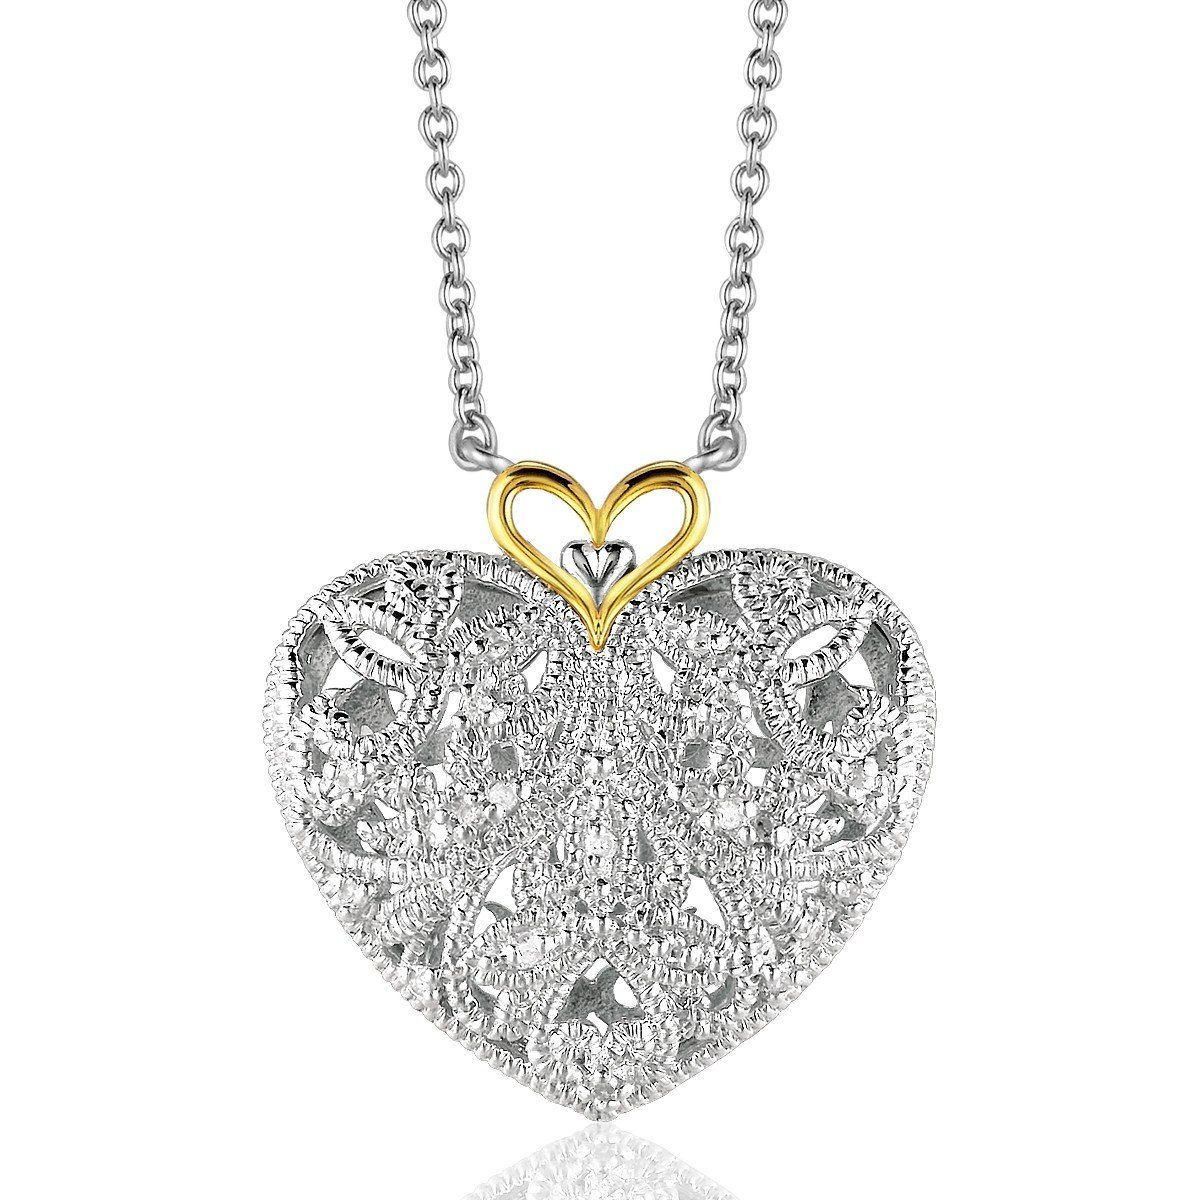 Sterling silver and 14k yellow gold filigree heart pendant with sterling silver and 14k yellow gold filigree heart pendant with diamond accent aloadofball Gallery